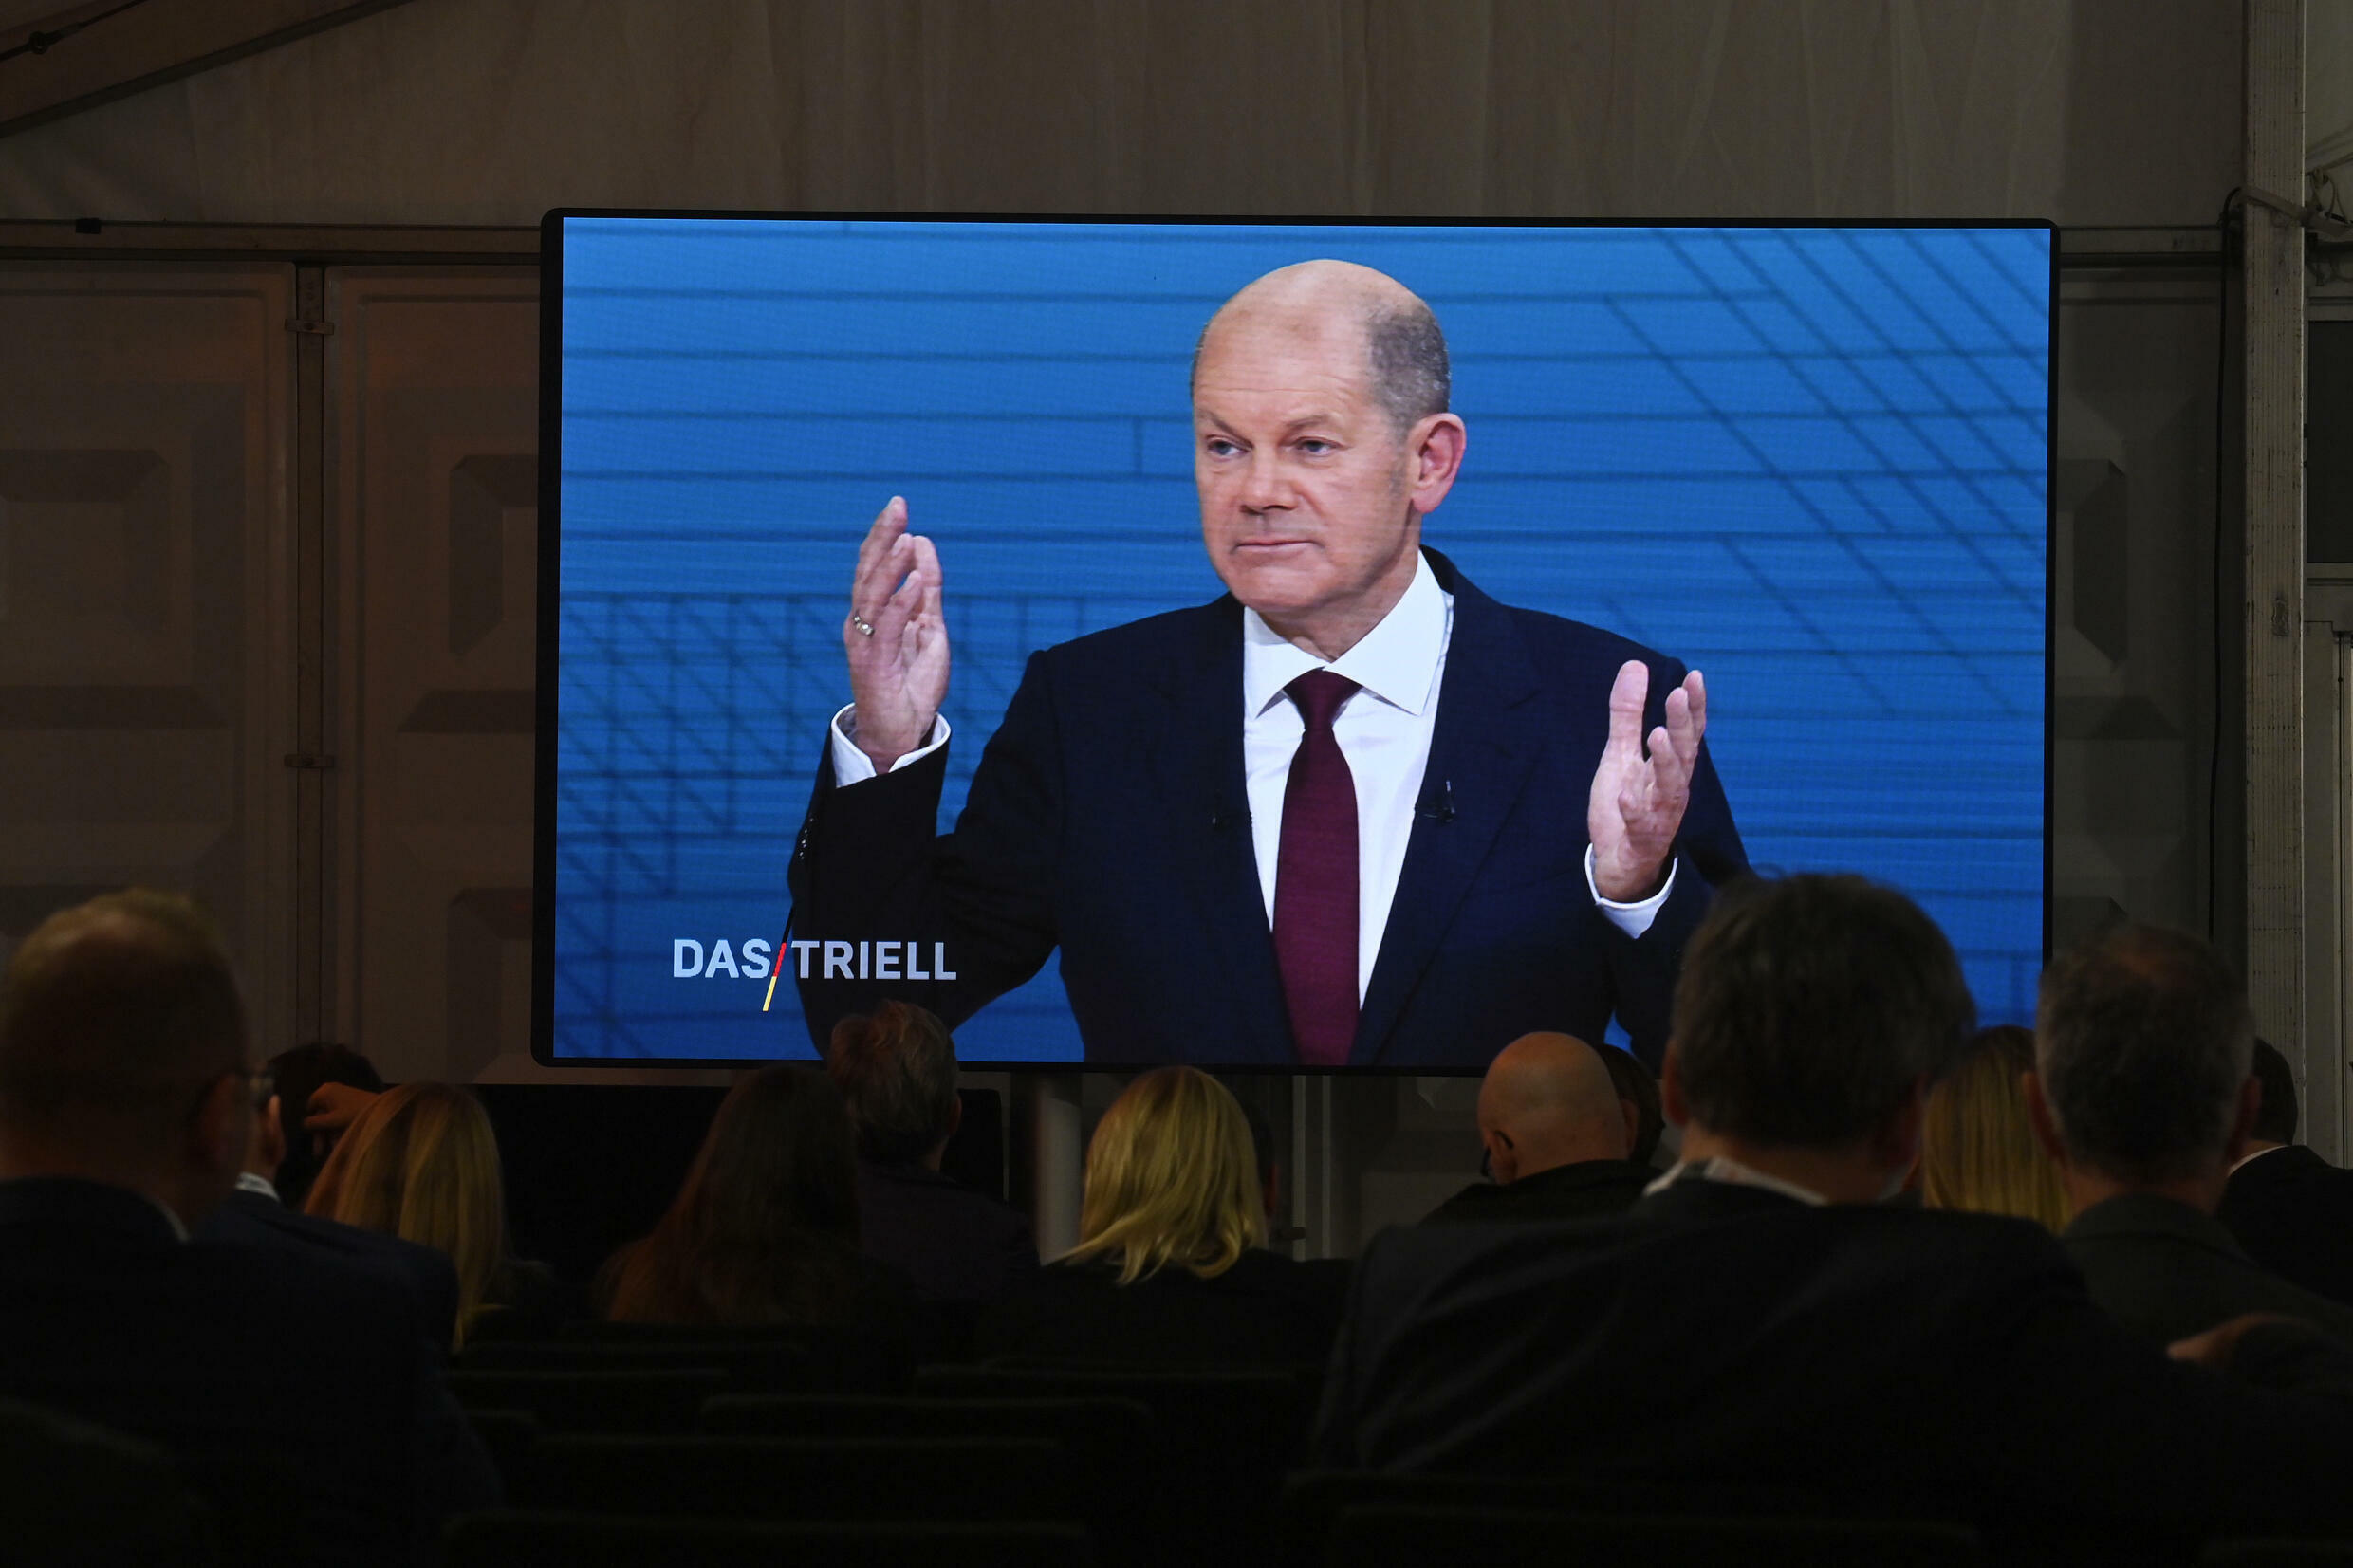 The SPD's leading candidate, Finance Minister Olaf Scholz, is in pole position to take Merkel's crown